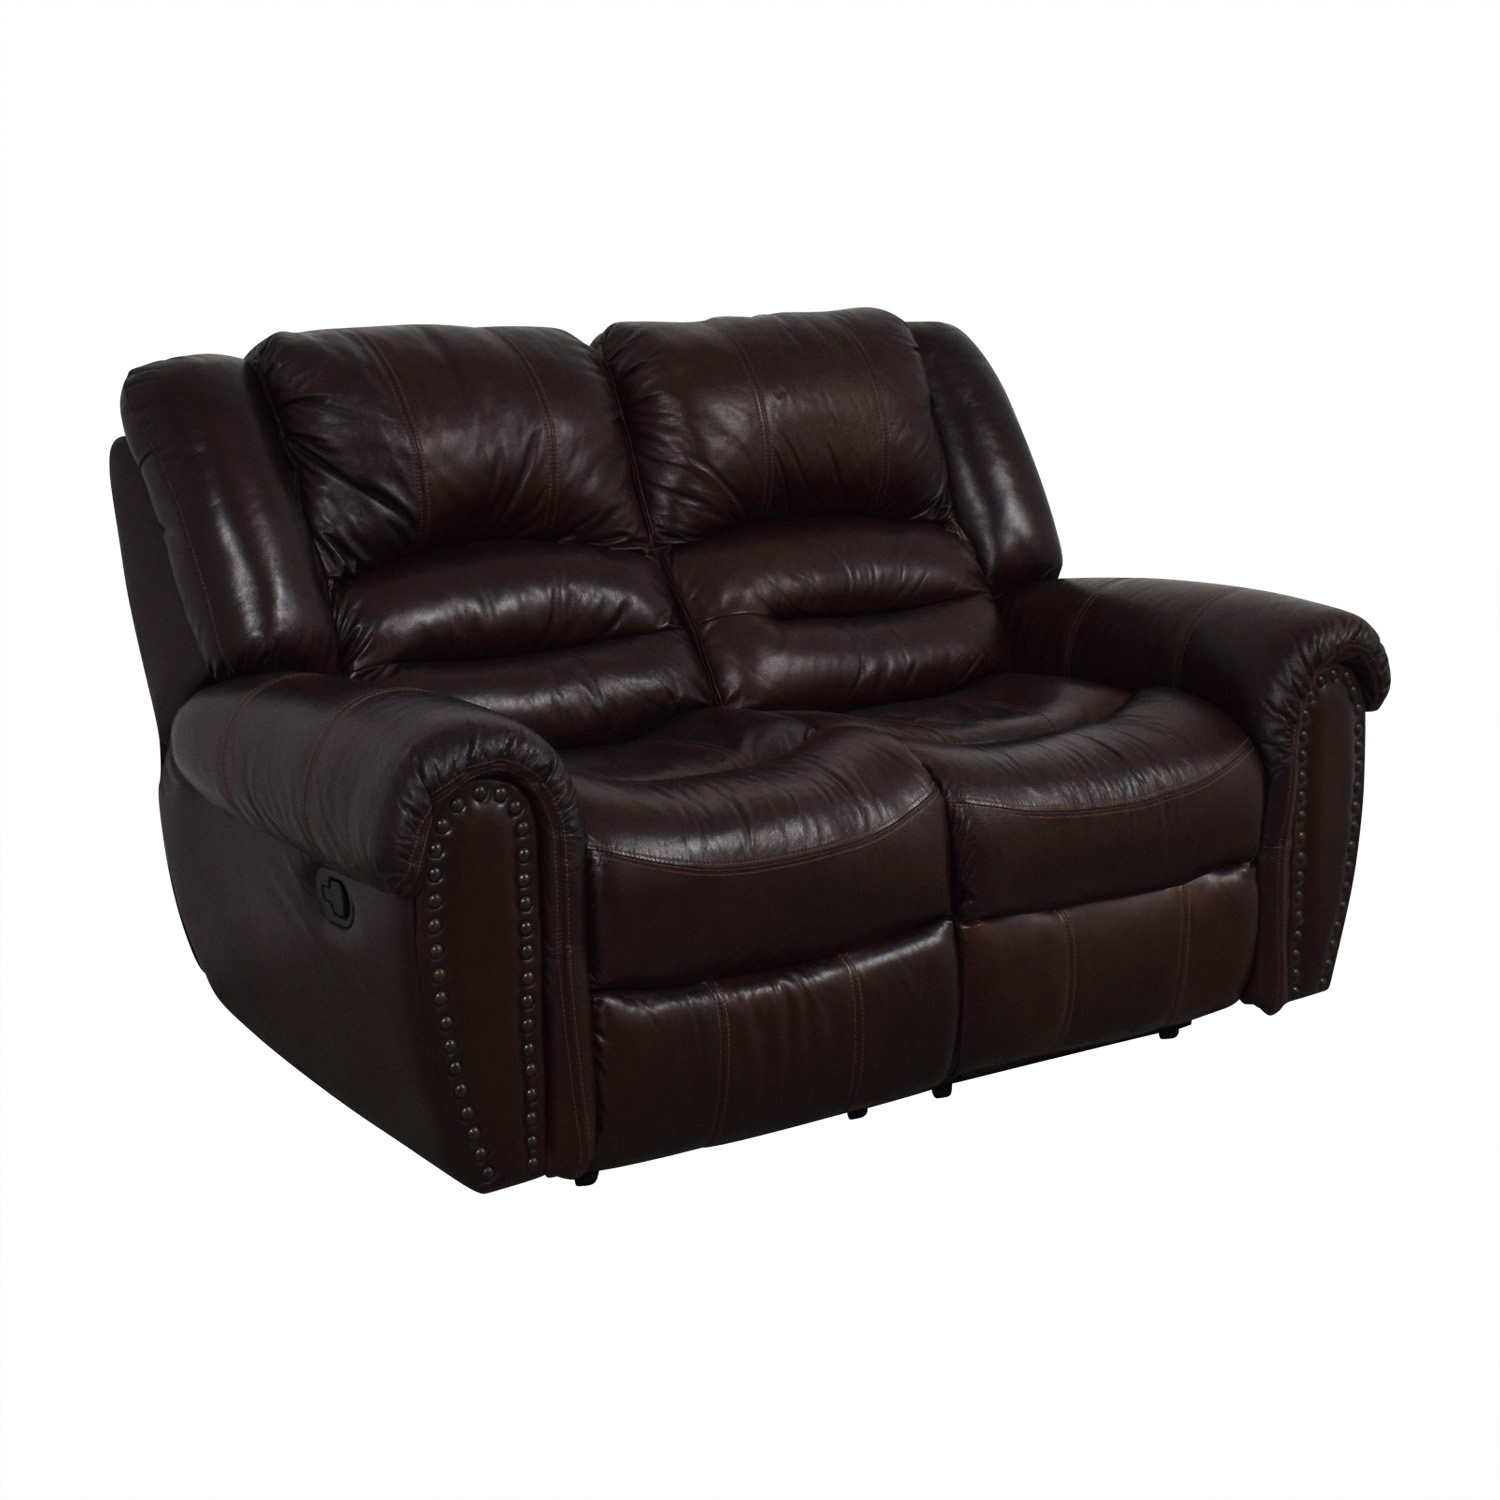 Double Recliner Chair 72 Off Raymour Flanigan Raymour Flanigan Brown Leather Double Reclining Loveseat Chairs